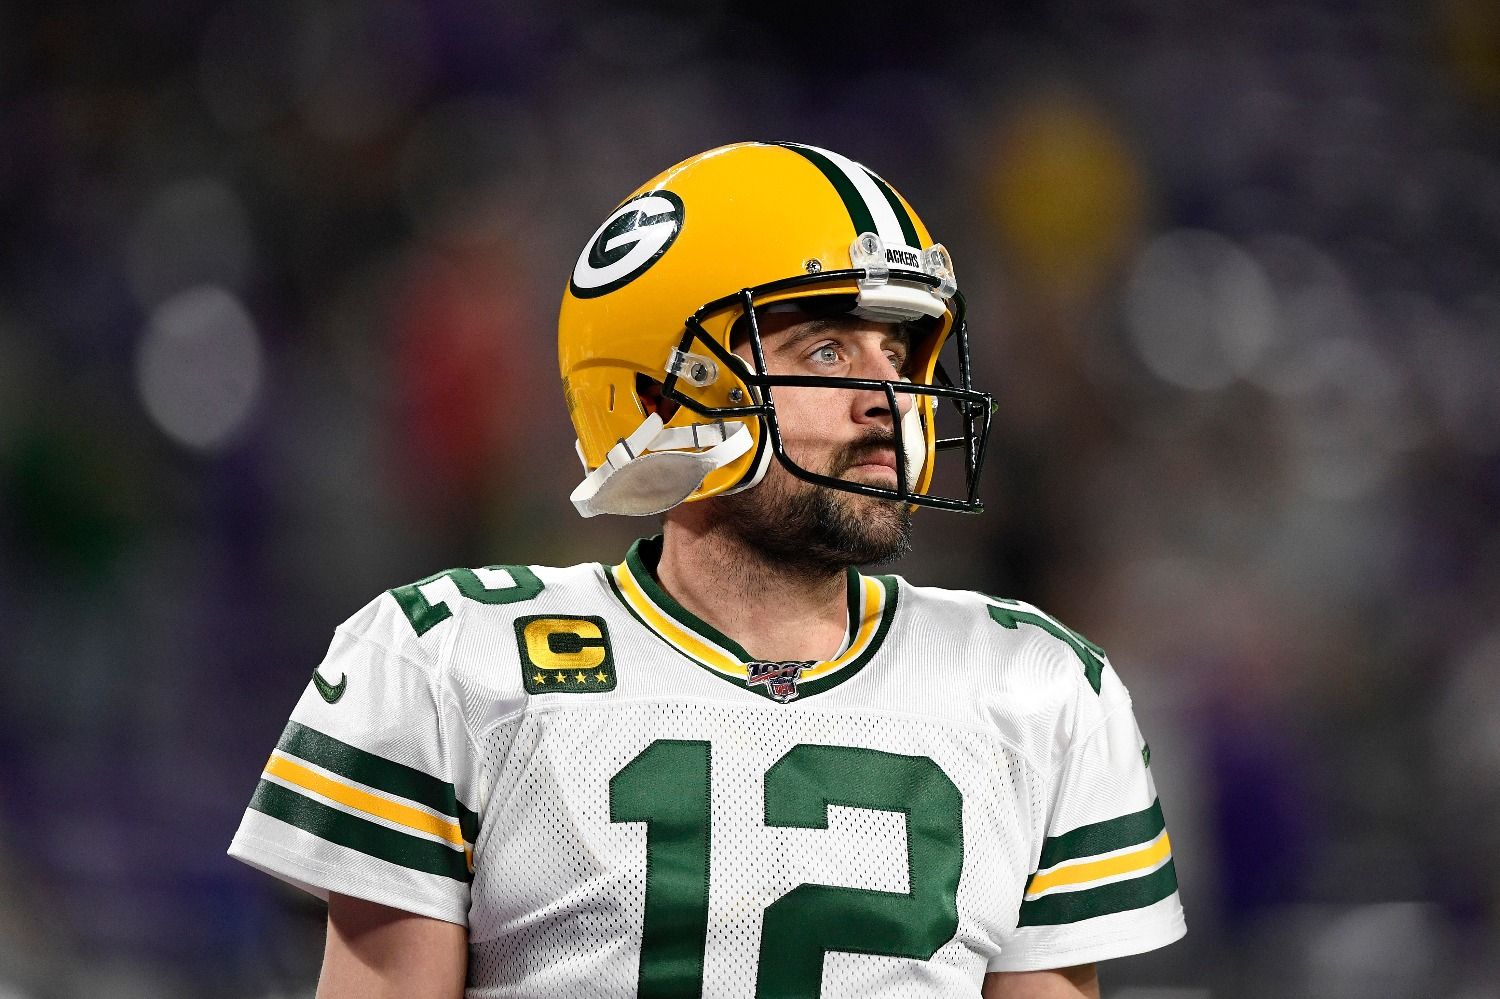 Aaron Rodgers just lost another weapon, as Green Bay Packers TE Josiah Deguara will miss the rest of his rookie season with a torn ACL.